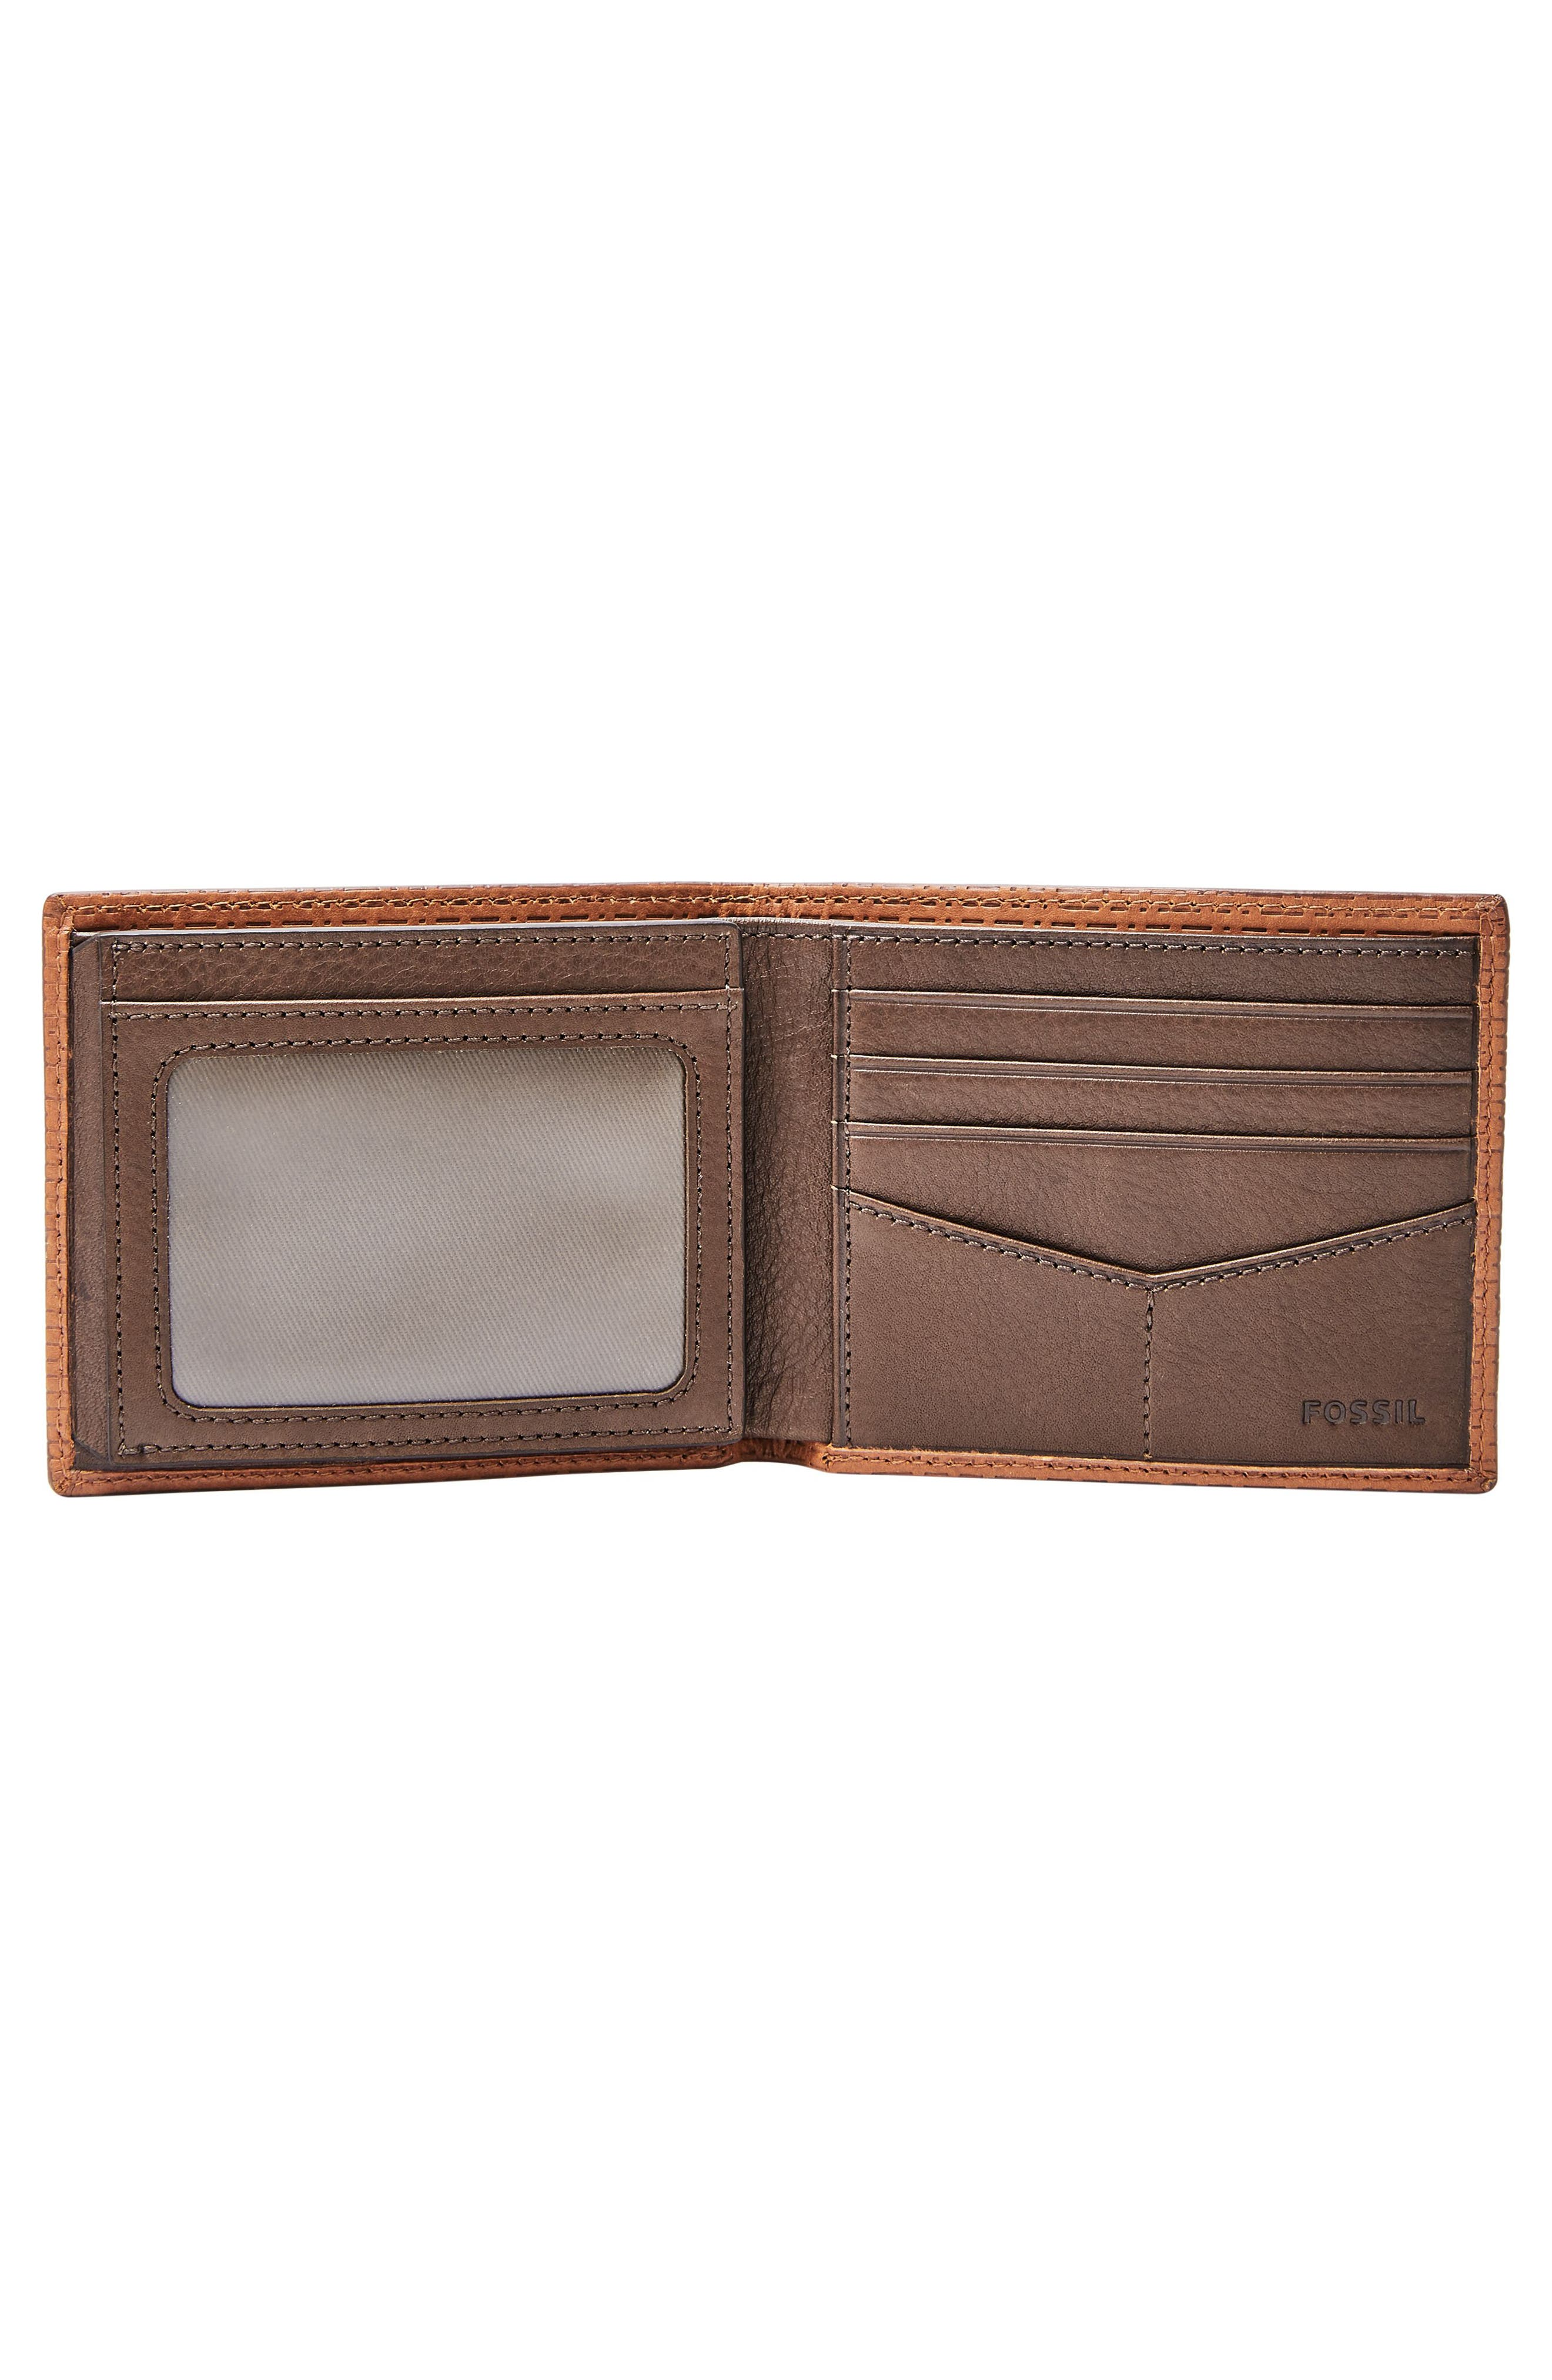 Coby Leather Wallet,                             Alternate thumbnail 2, color,